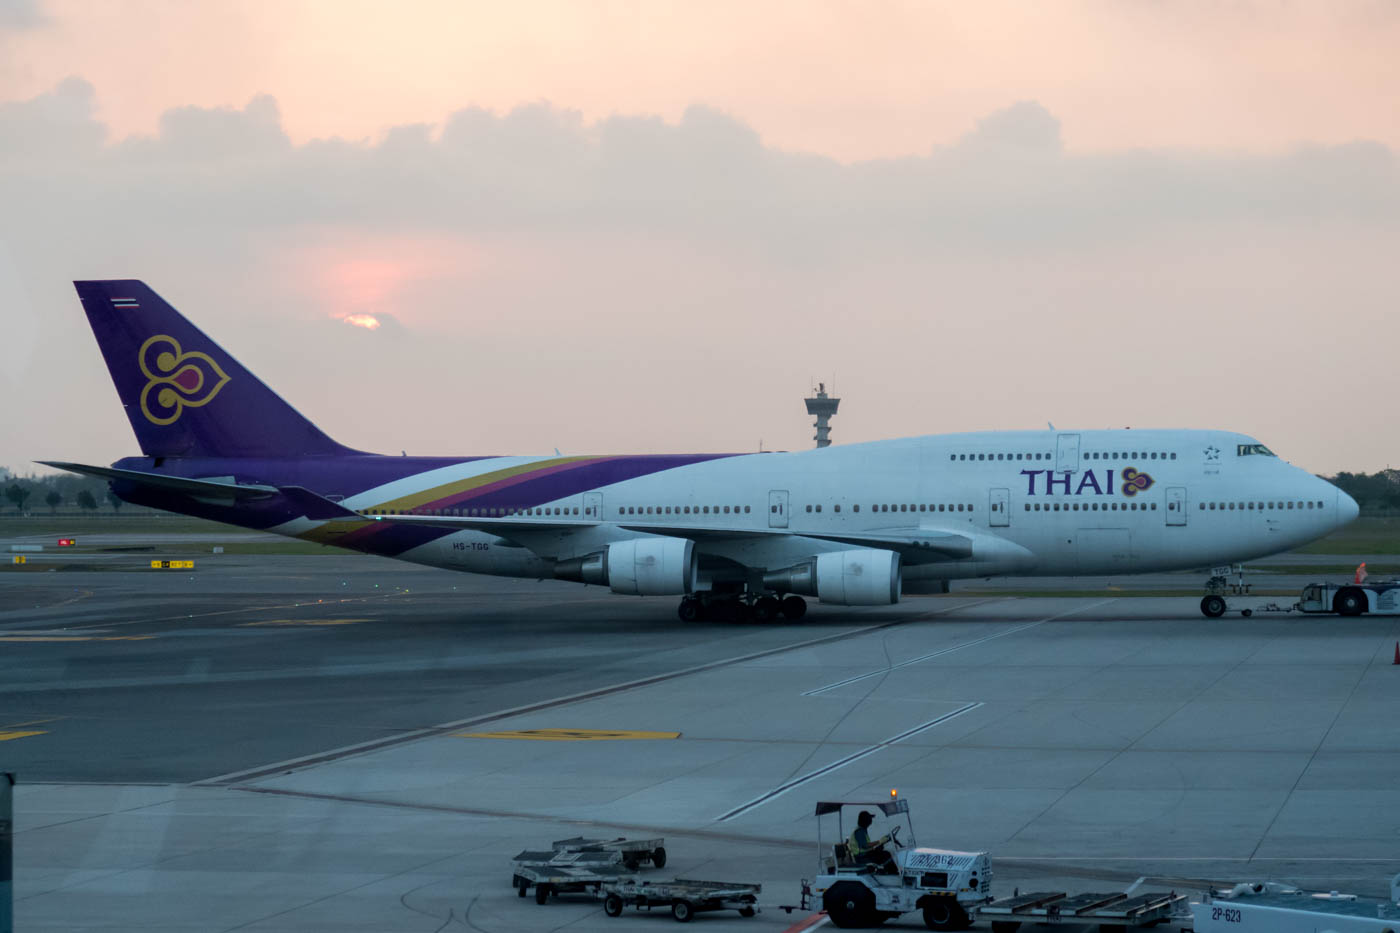 Thai Airways Boeing 747-400 Being Towed